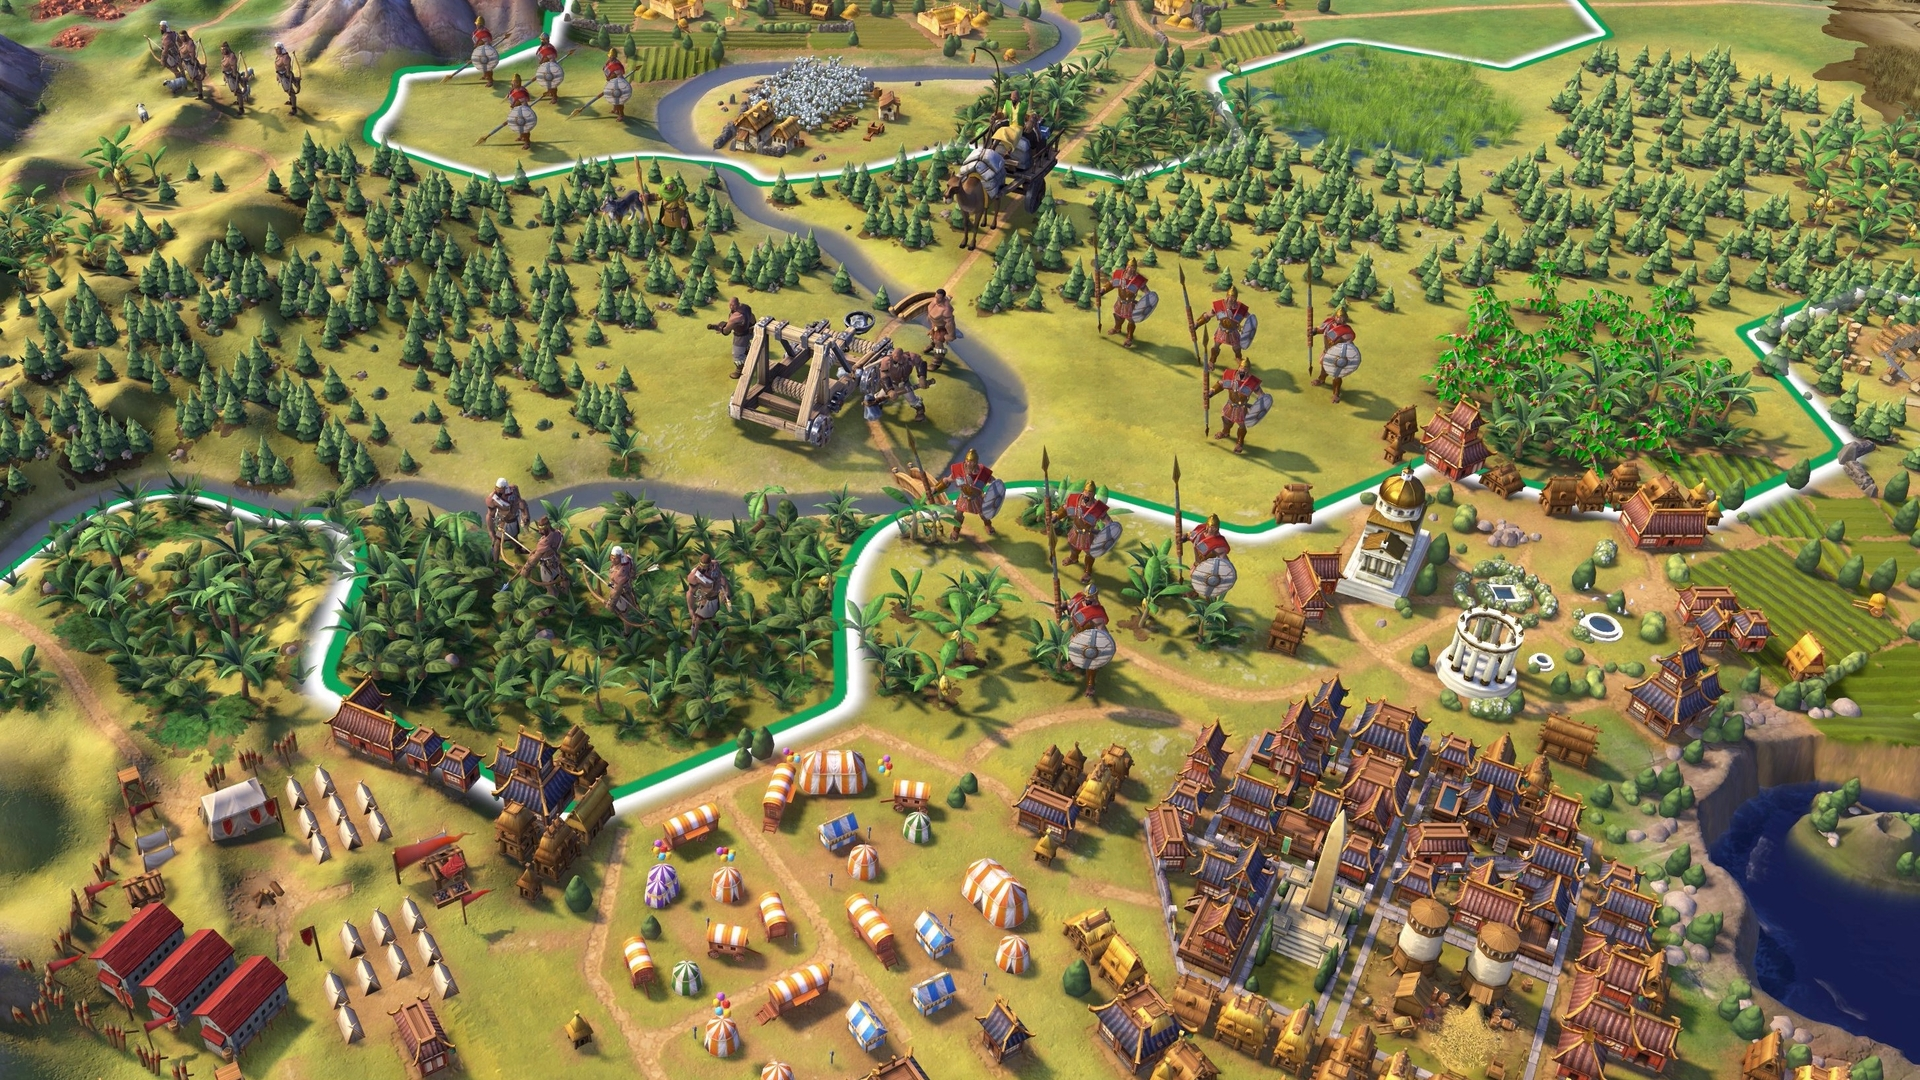 The composer of the Civilization 4 theme returns for Civilization 6